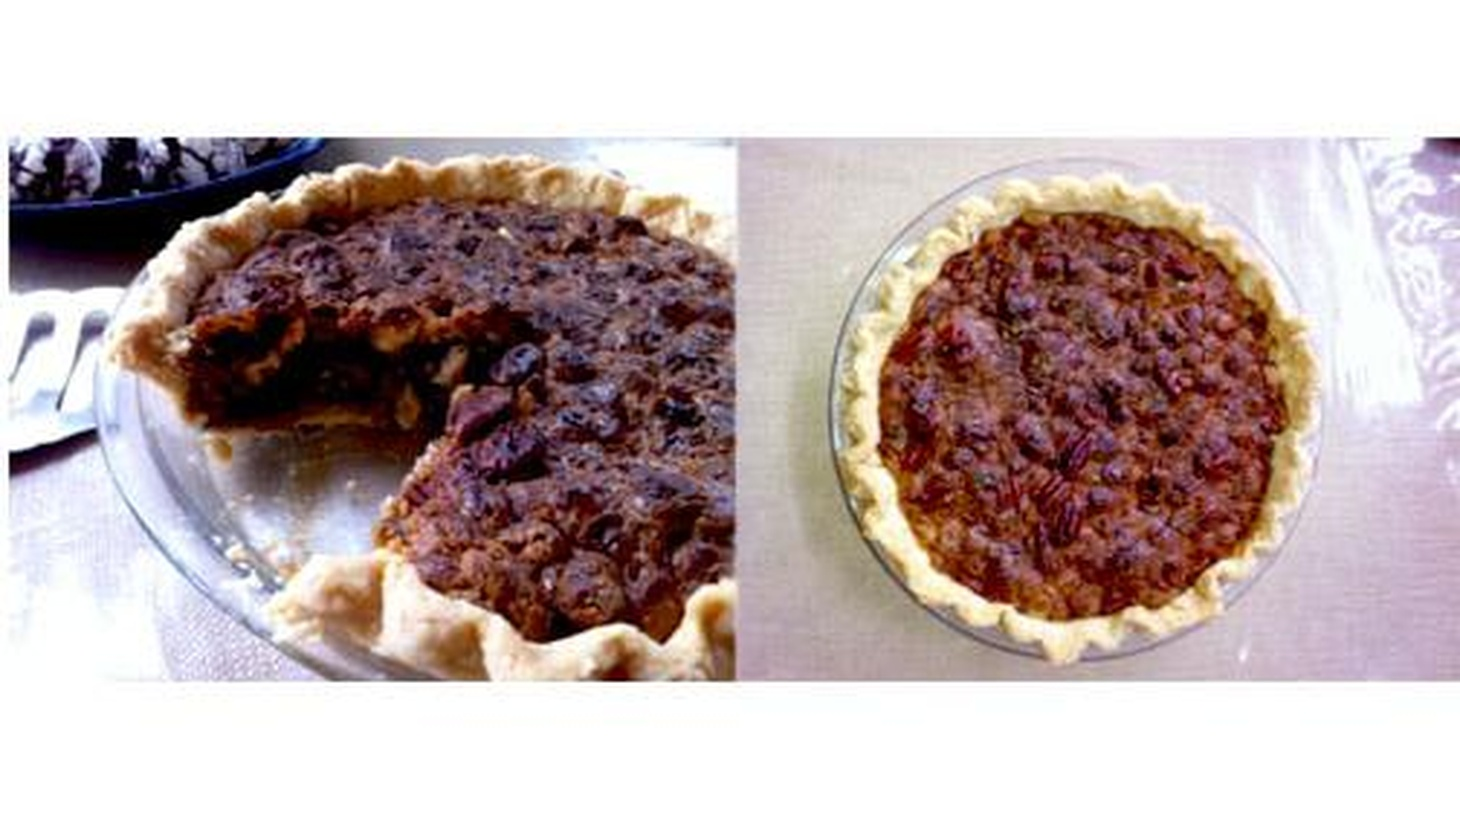 Food Network personality Cat Cora shares her family recipe for White Chocolate Pecan Pie.